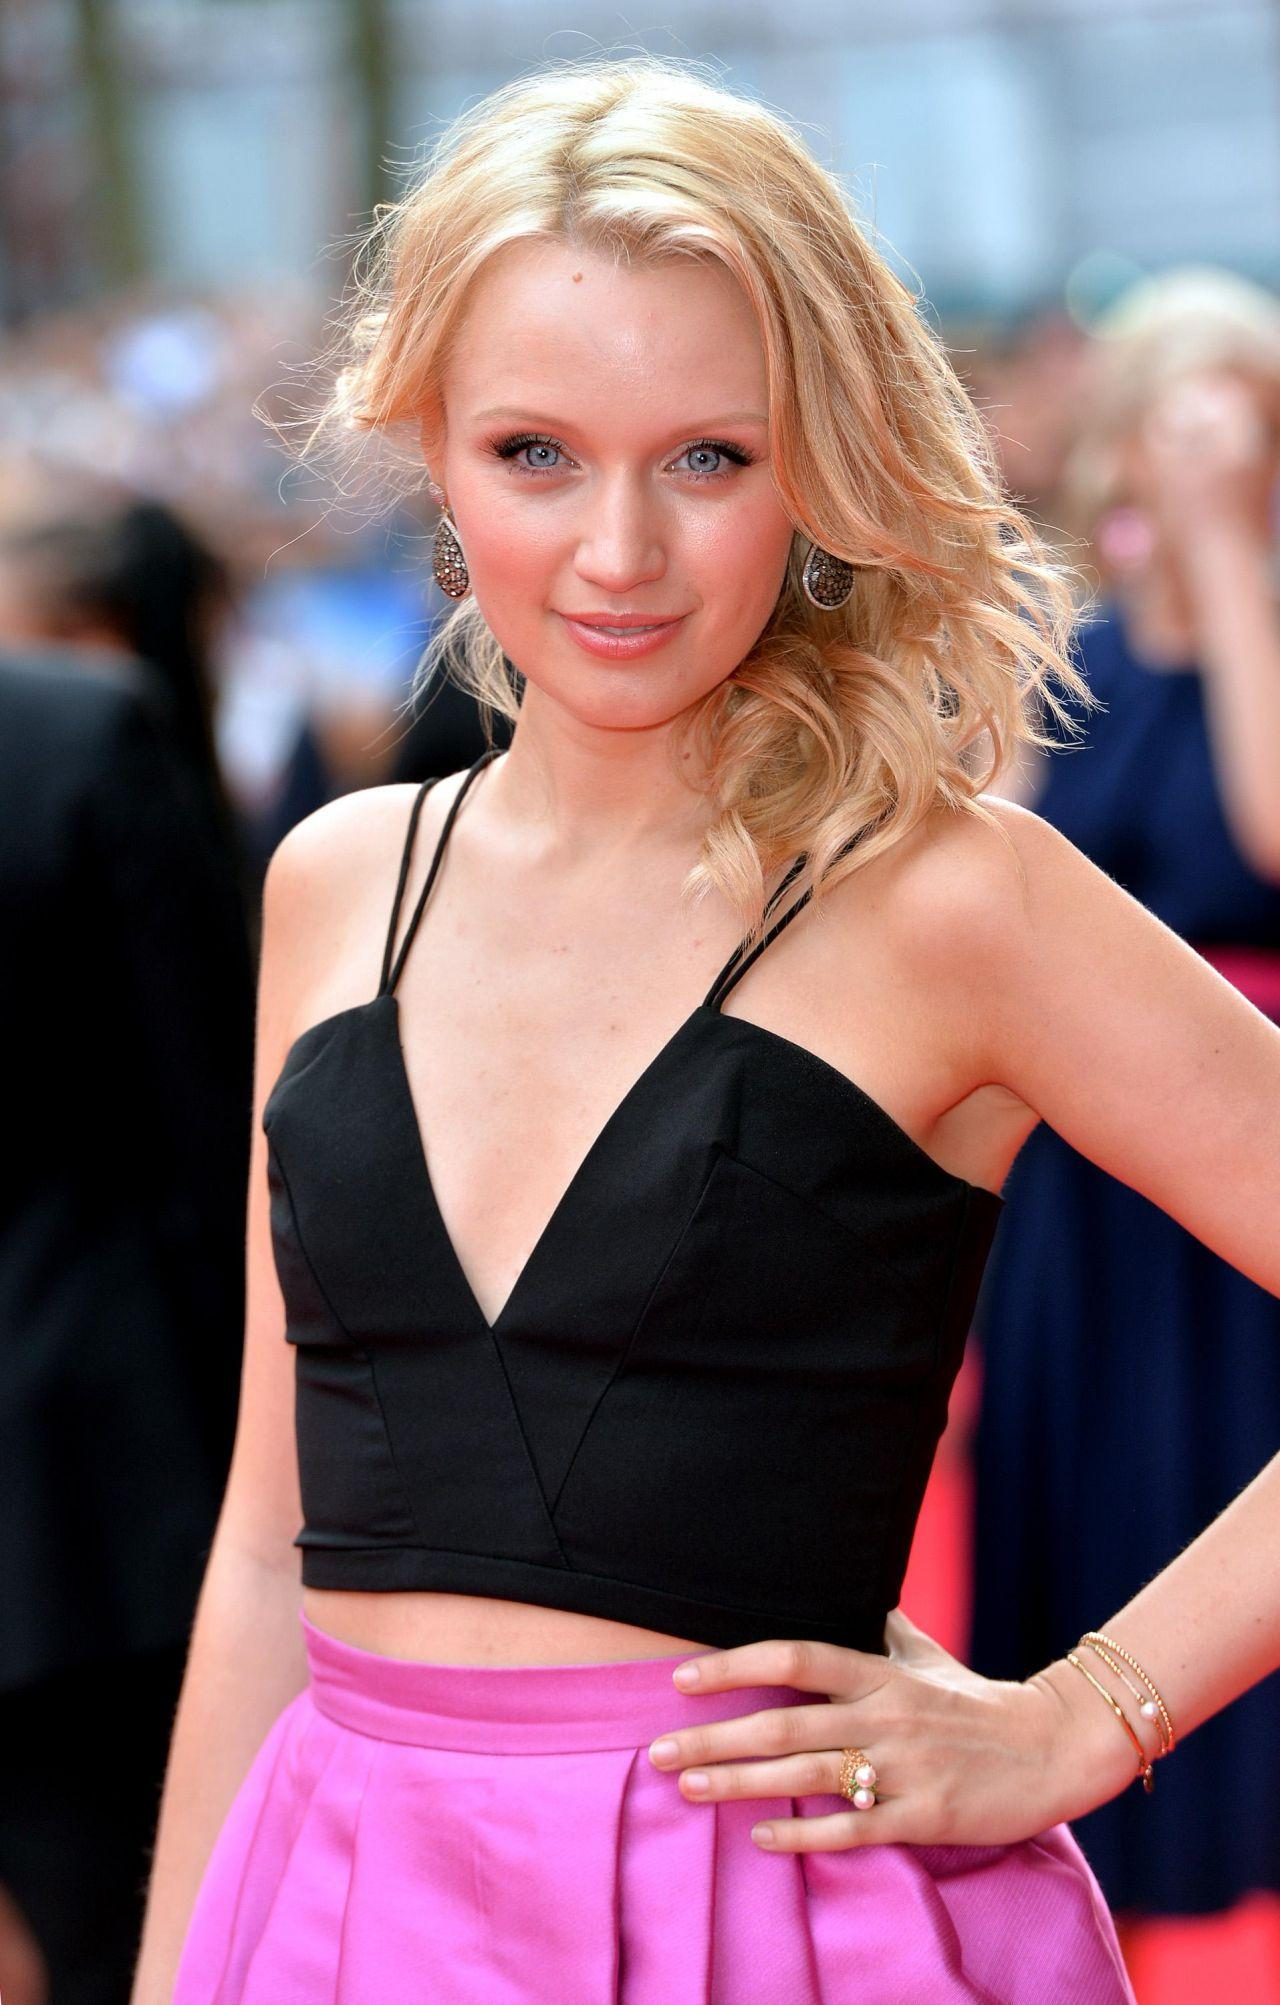 images Emily Berrington